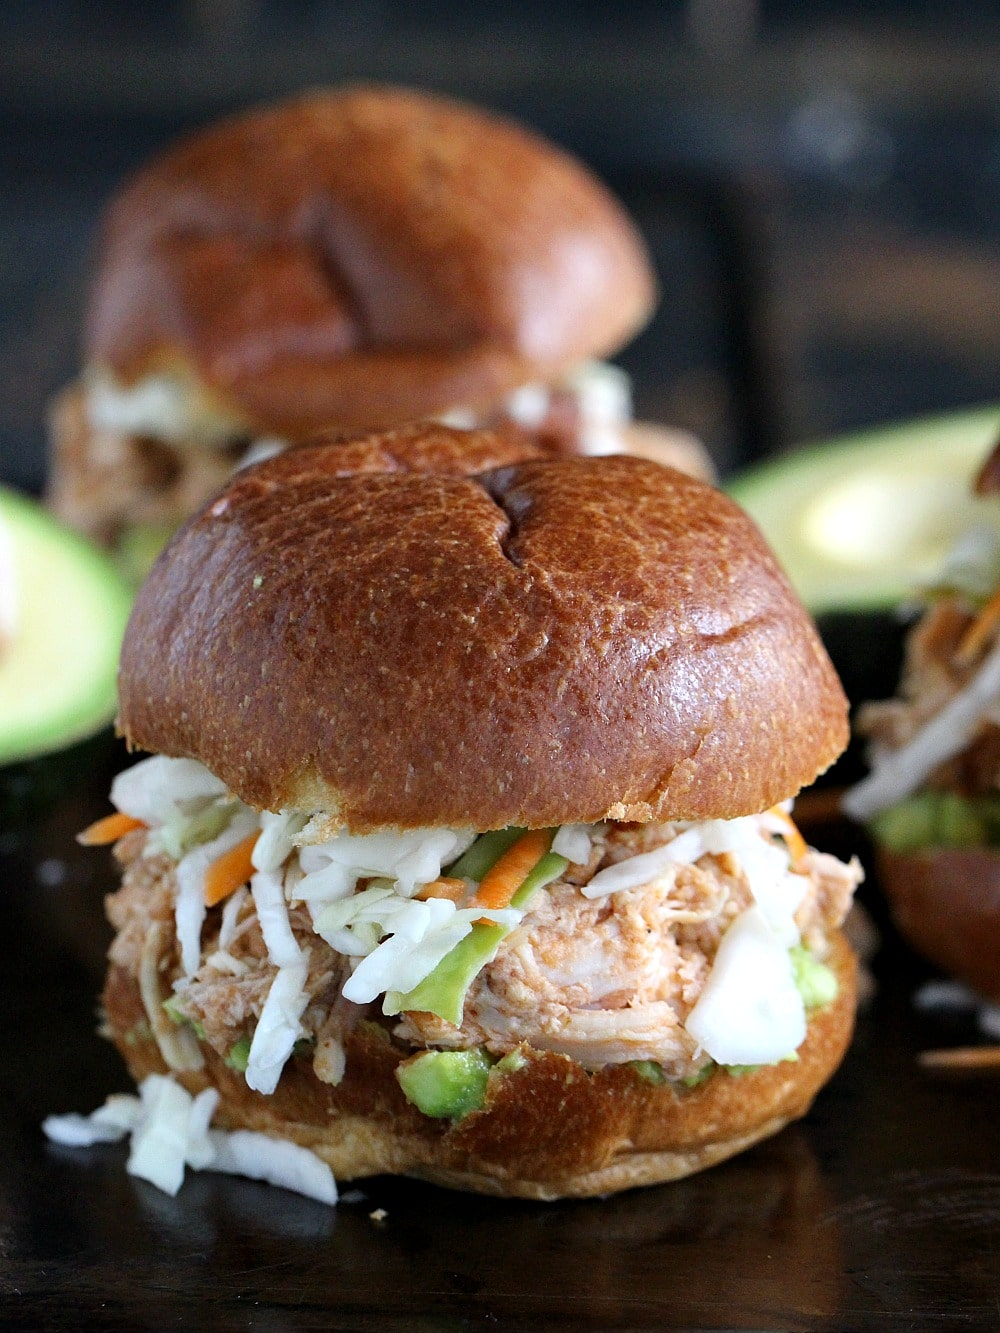 No Cook Spicy Chicken Sliders are made with rotisserie chicken, guacamole, cole slaw and spicy Veracha sauce for an easy and delicious appetizer or entree.